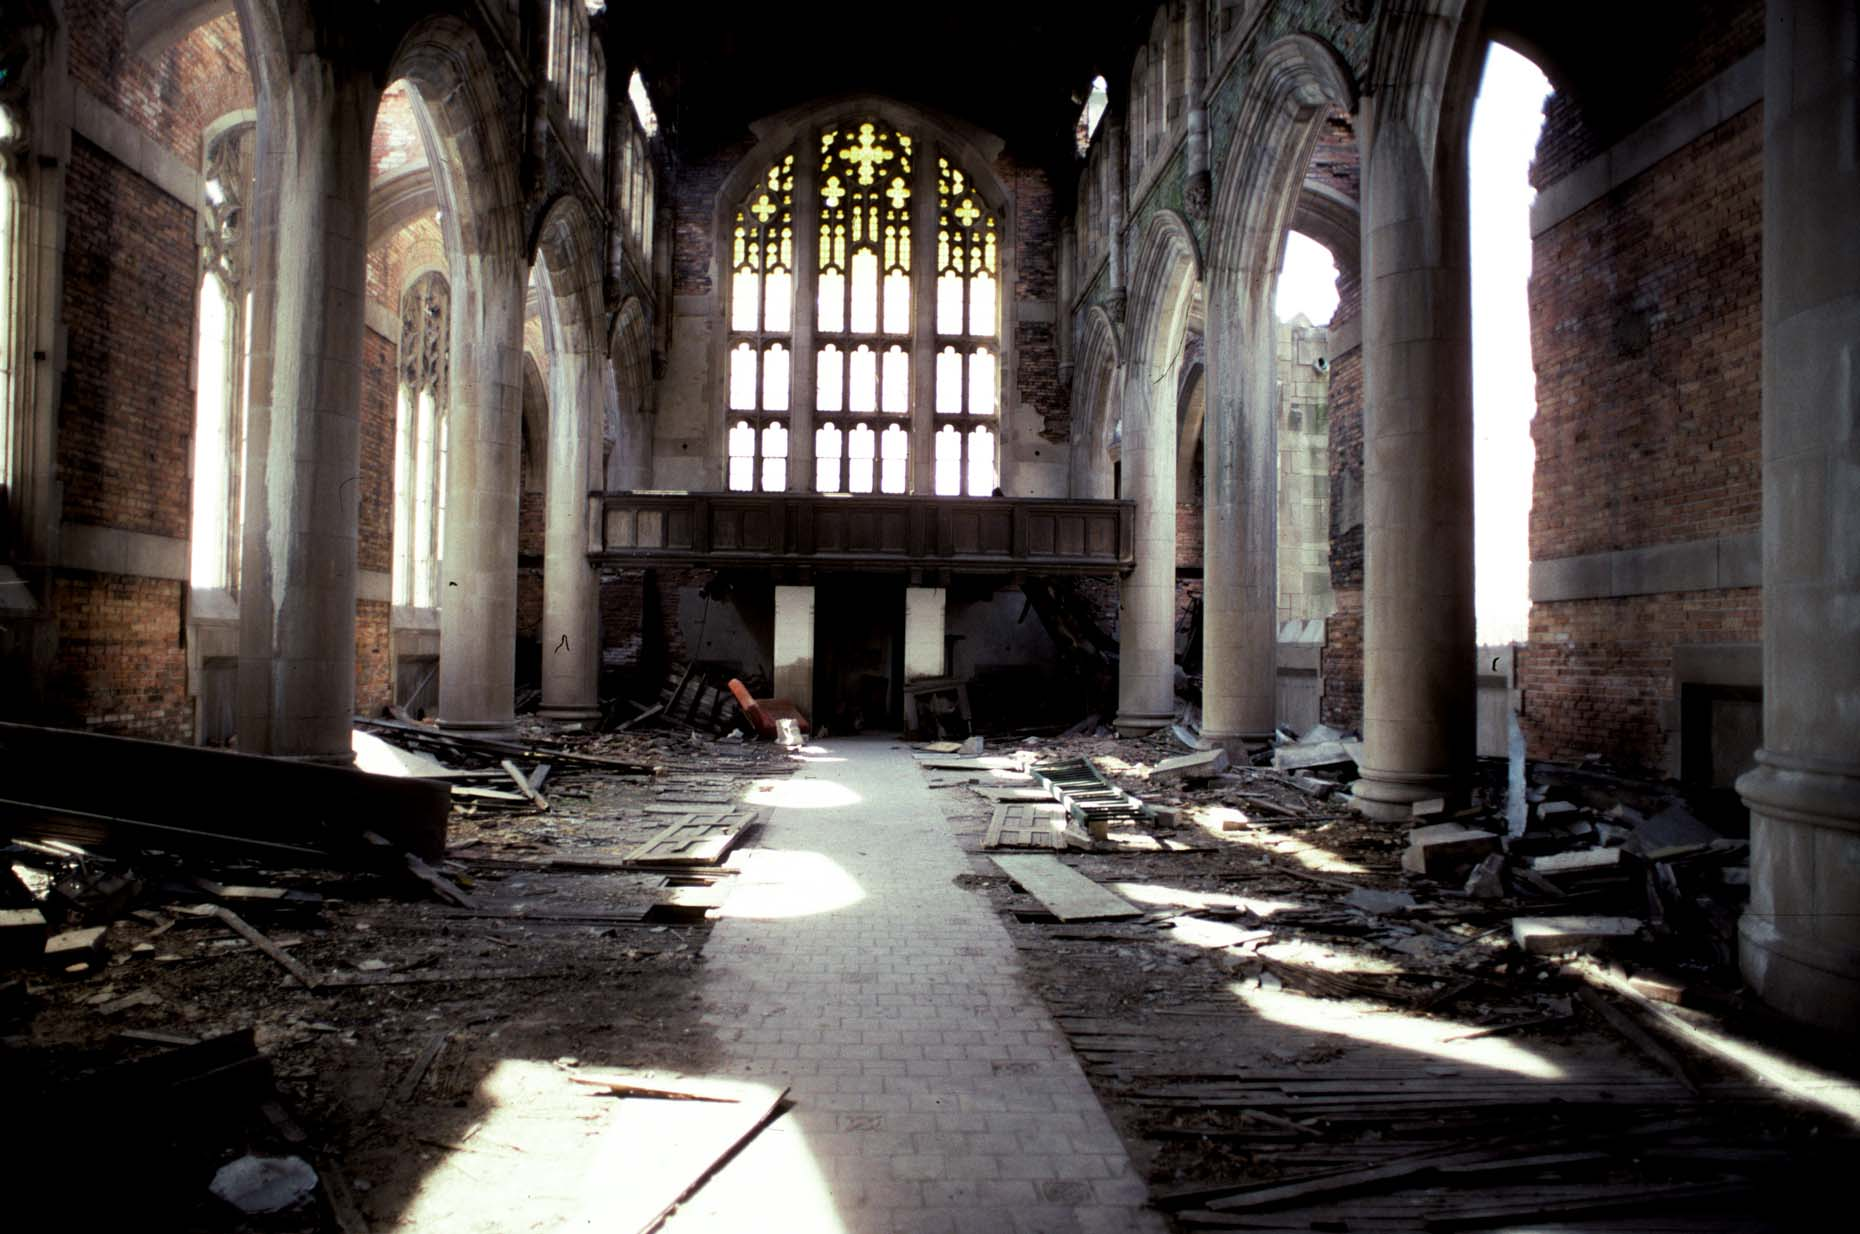 06_City Methodist Church, Washington St. at 6th Ave., Gary 2004_.jpg